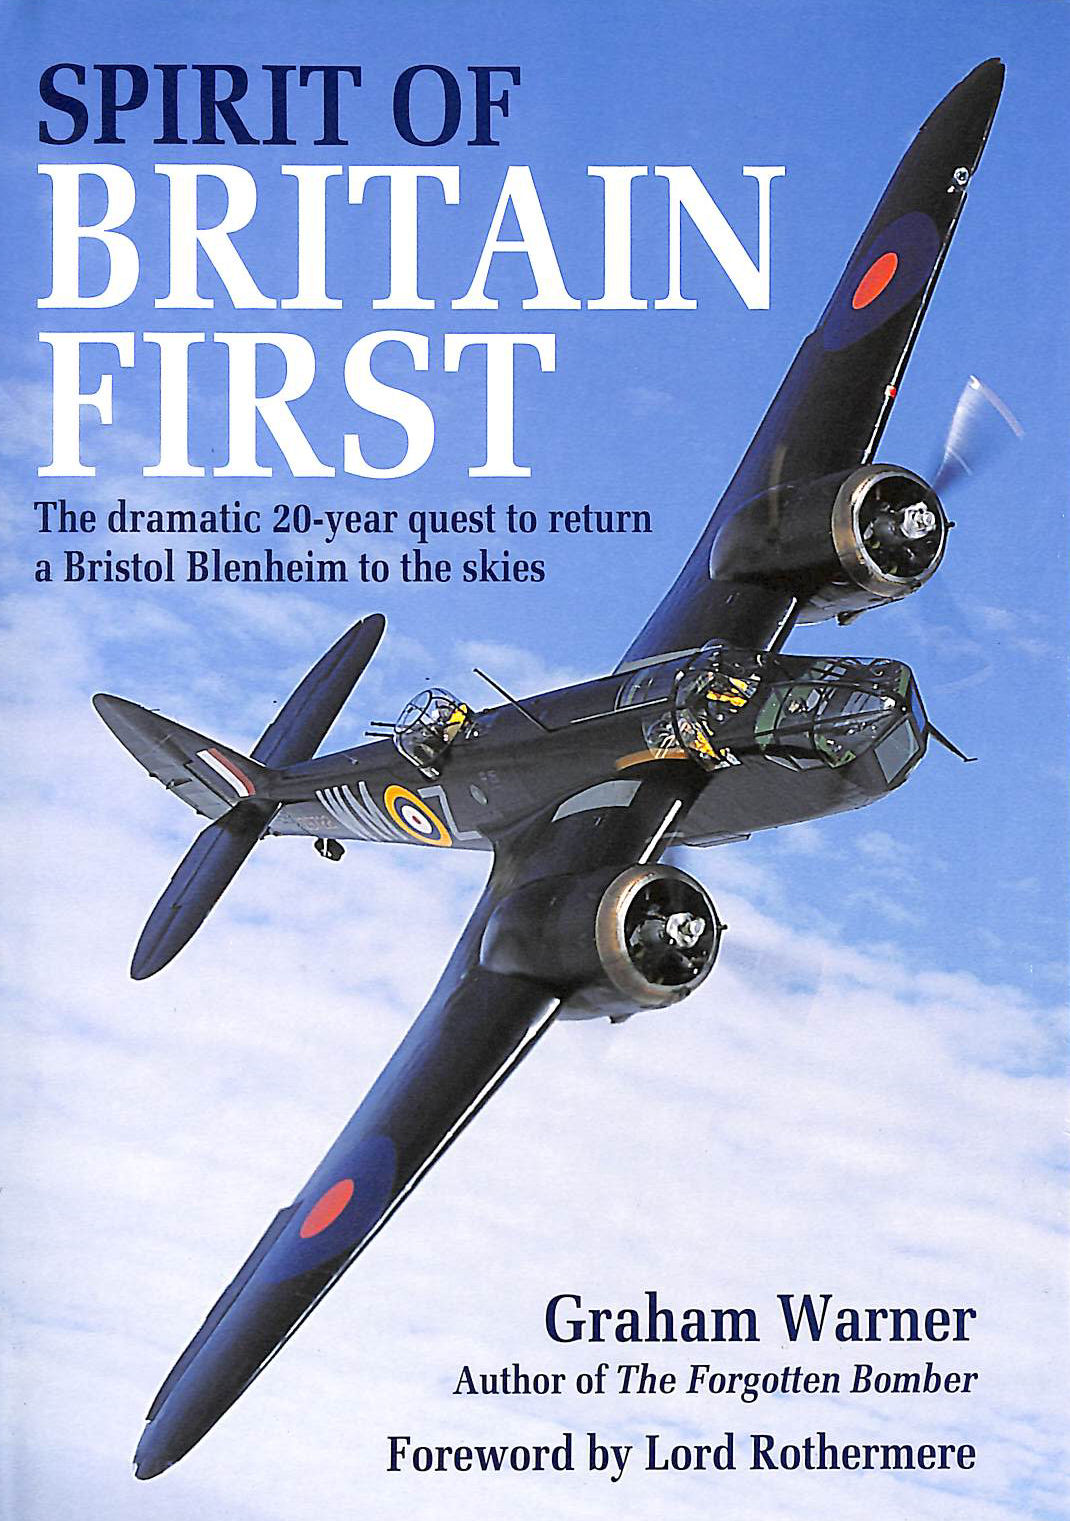 Image for Spirit of Britain First: The Dramatic 20 Year Quest to Return a Bristol Blenheim to the Skies